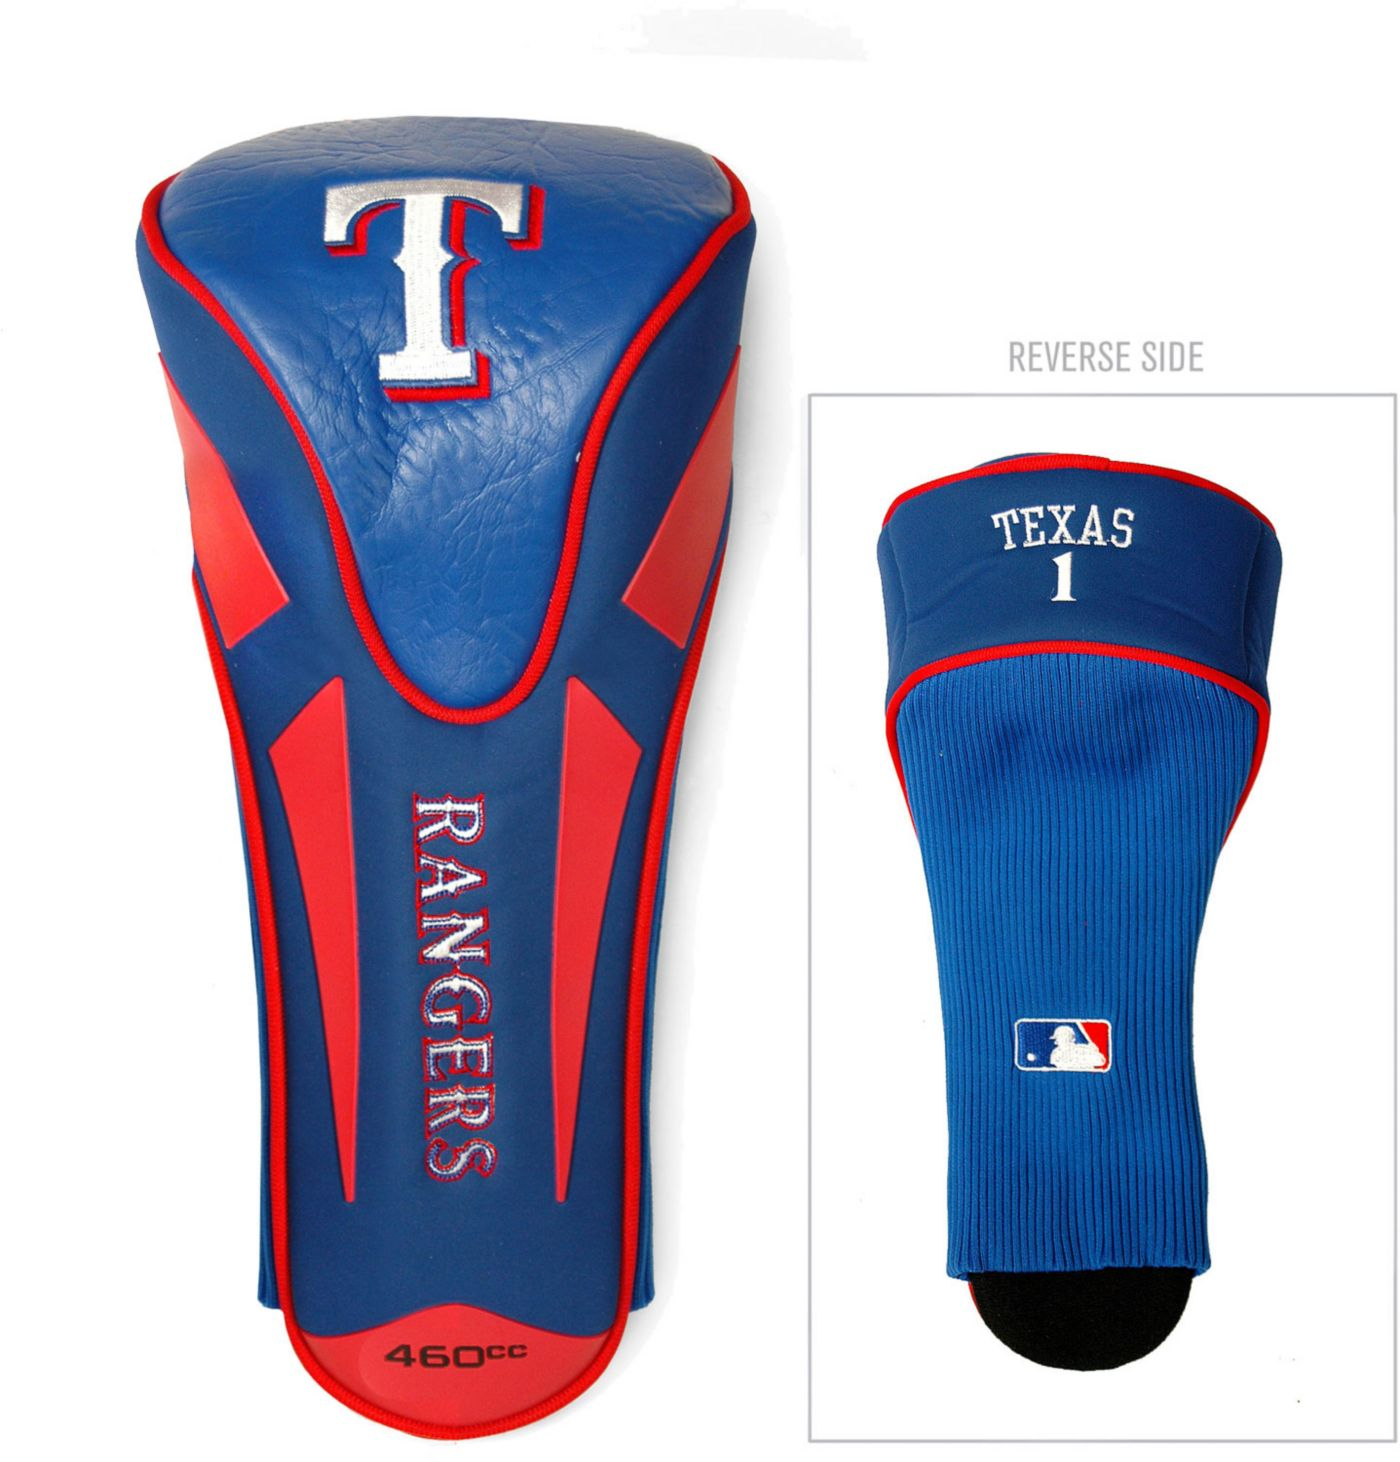 Team Golf APEX Texas Rangers Headcover